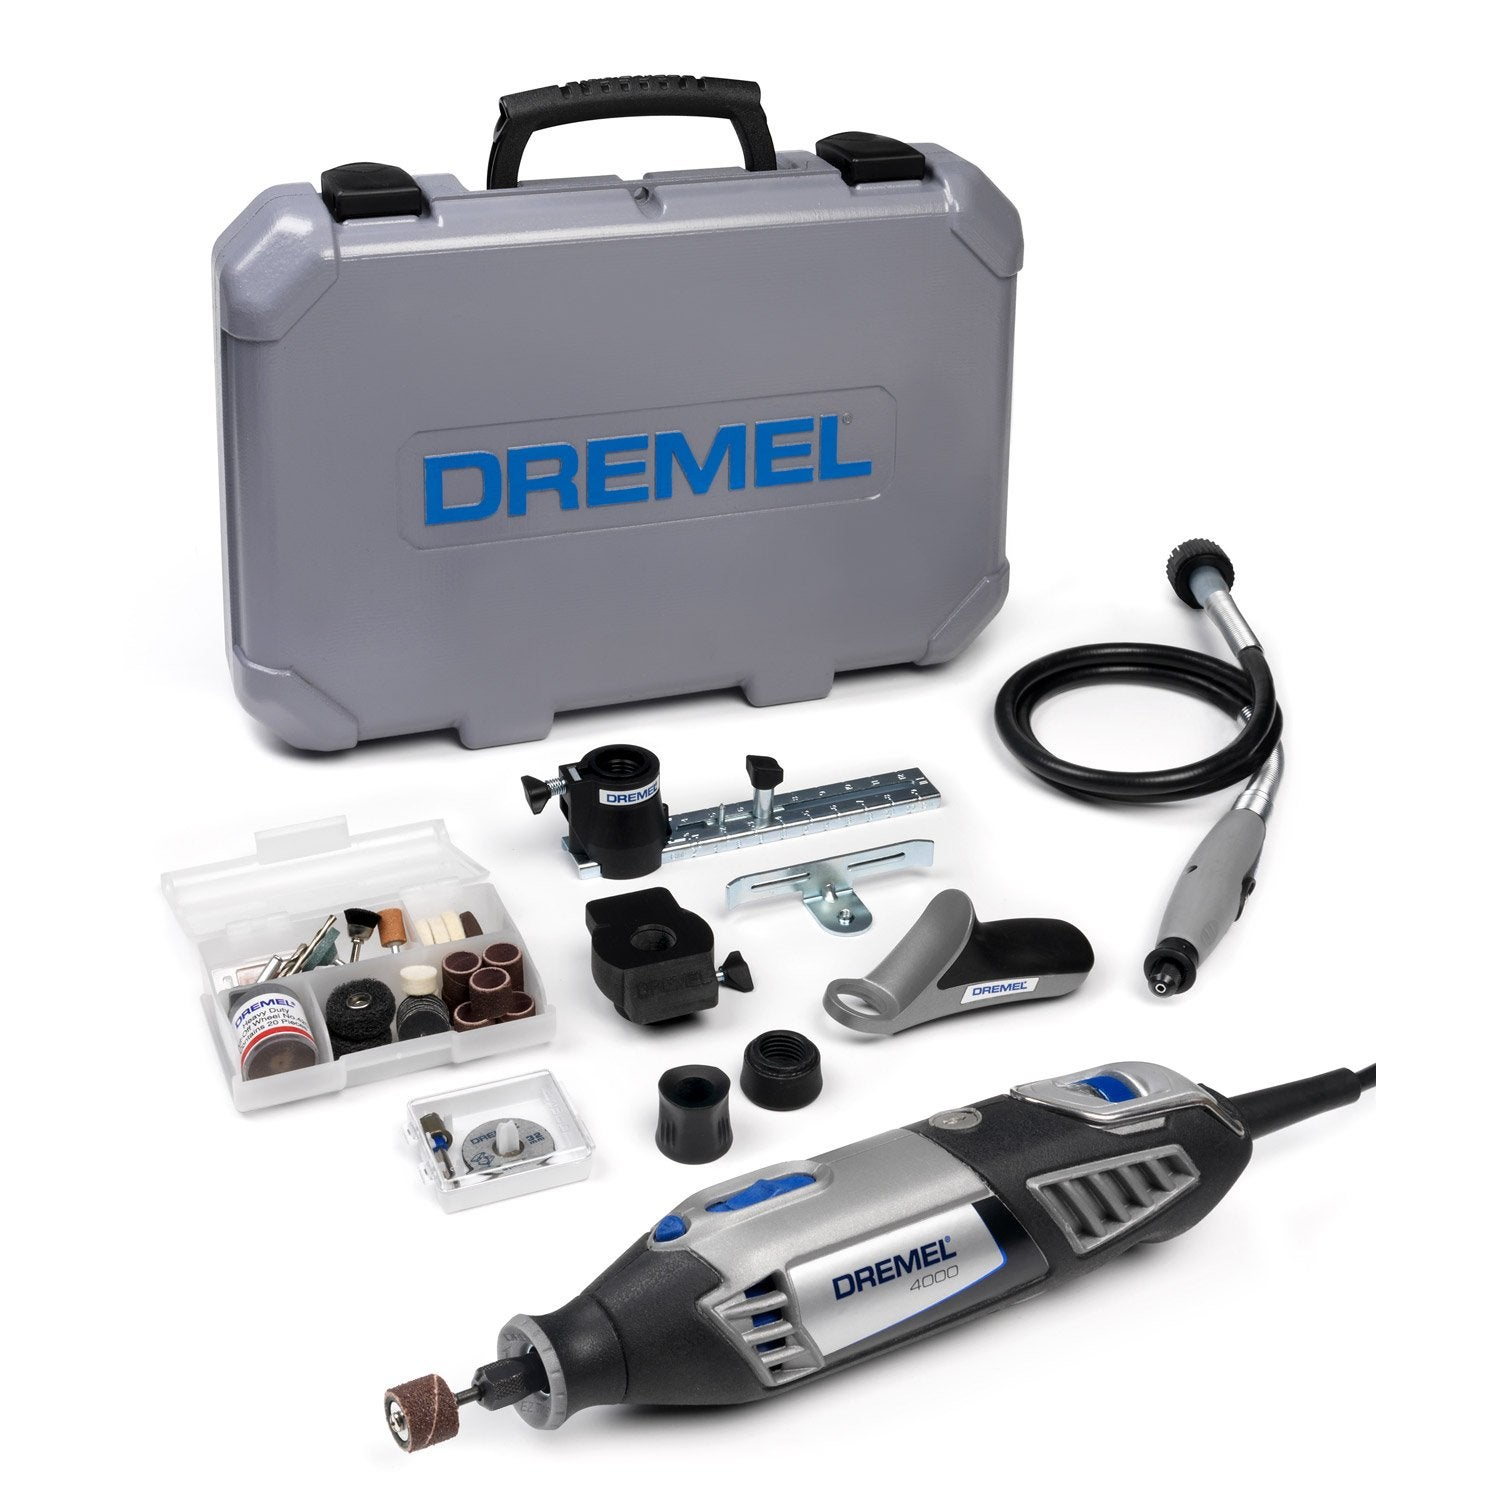 minioutillage dremel 175 w leroy merlin. Black Bedroom Furniture Sets. Home Design Ideas